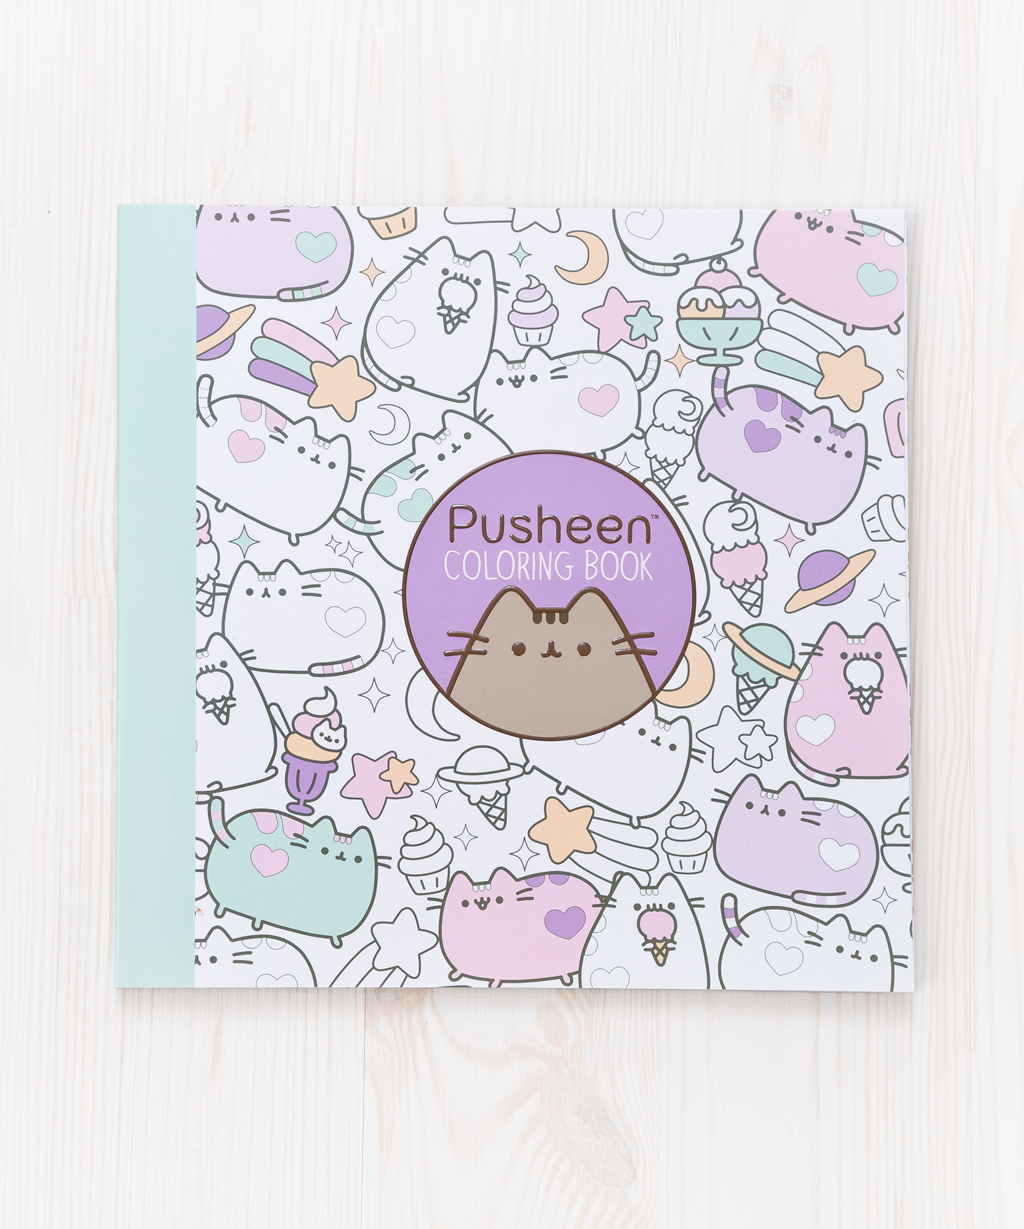 pusheen the cat coloring book u2013 hey chickadee